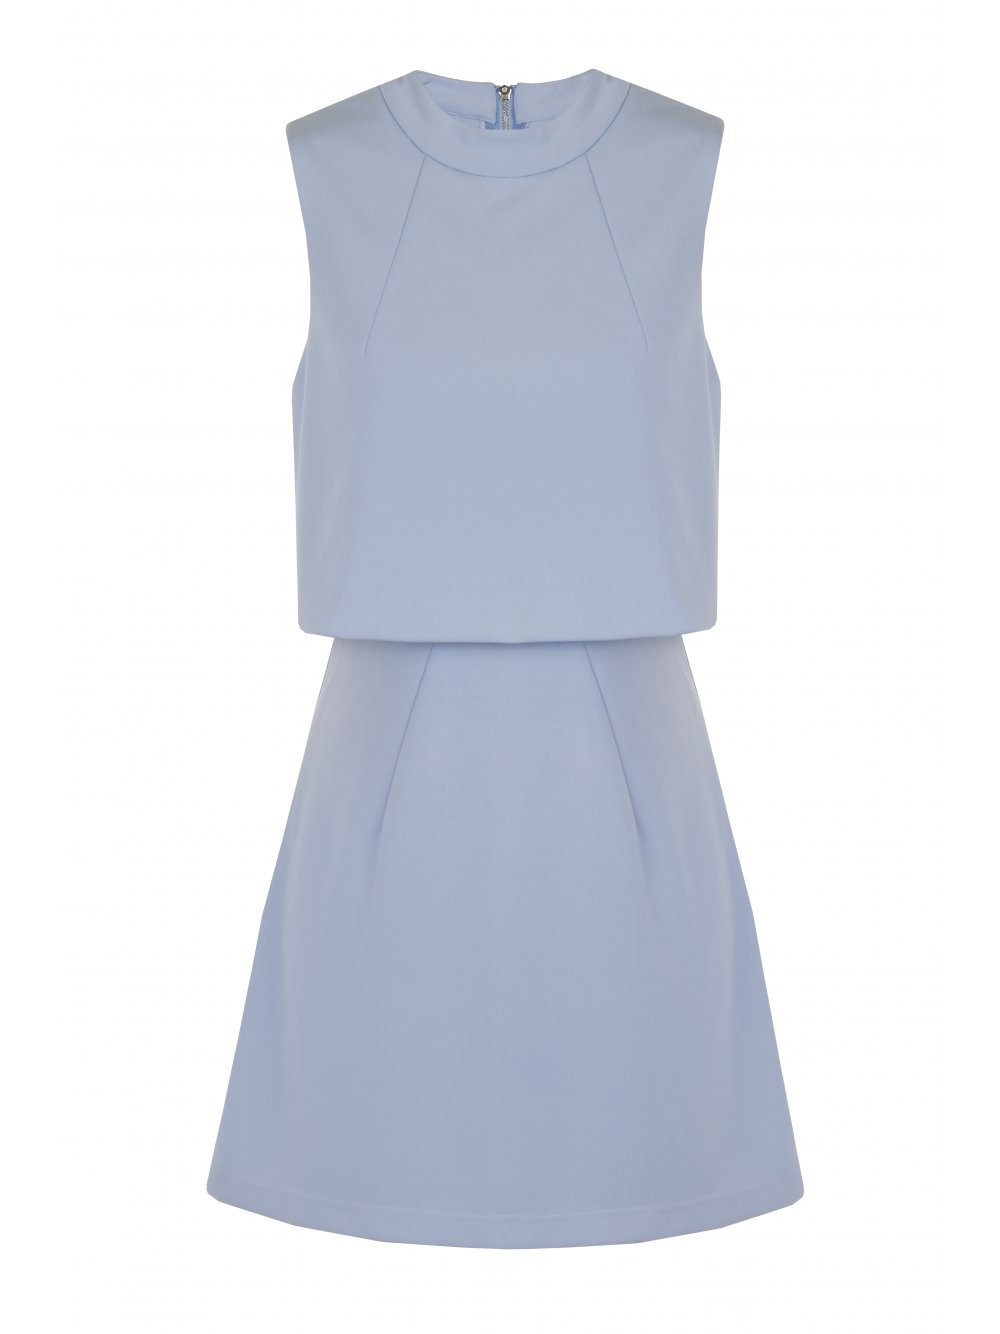 Powder Blue Cropped Mini Dress - from Lavish Alice UK